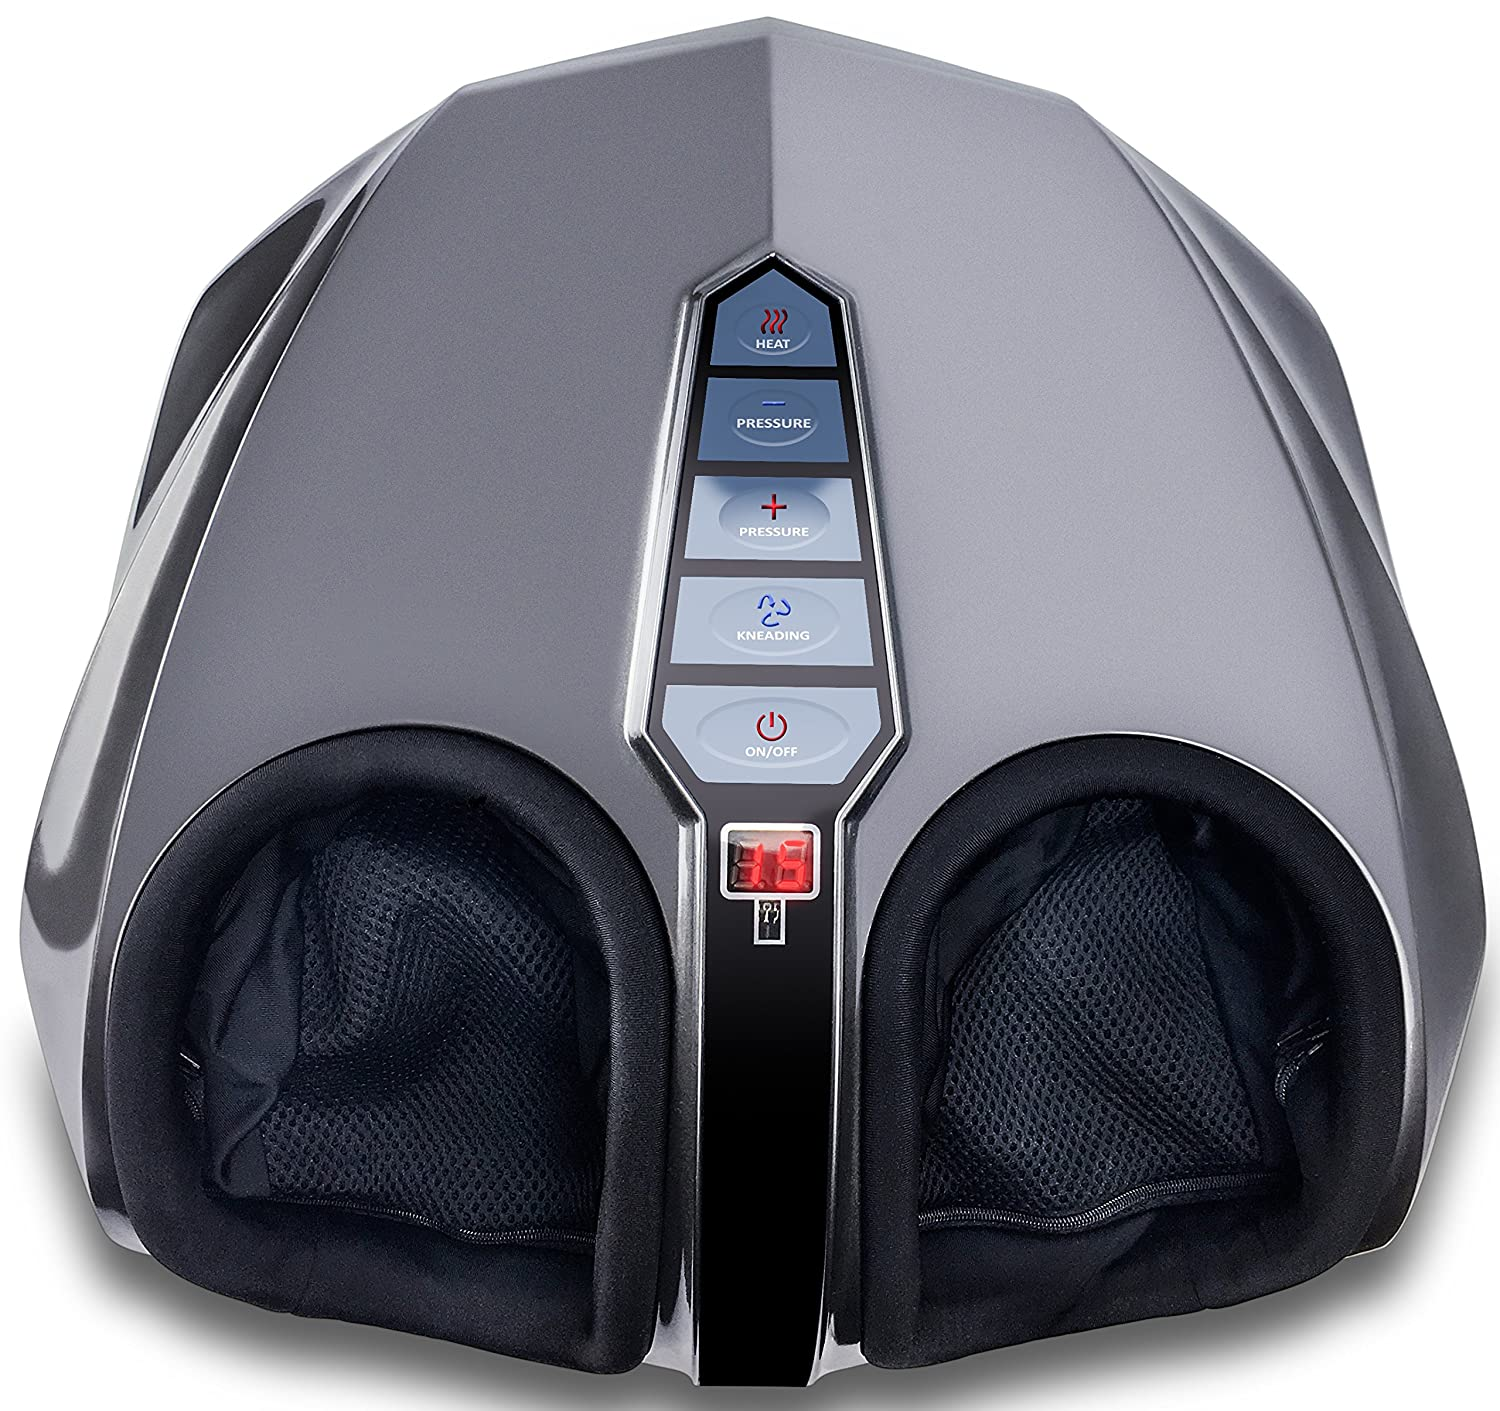 Miko Shiatsu Foot Massager With Deep-Kneading, Multi-Level Settings And Switchable Heat Charcoal Grey